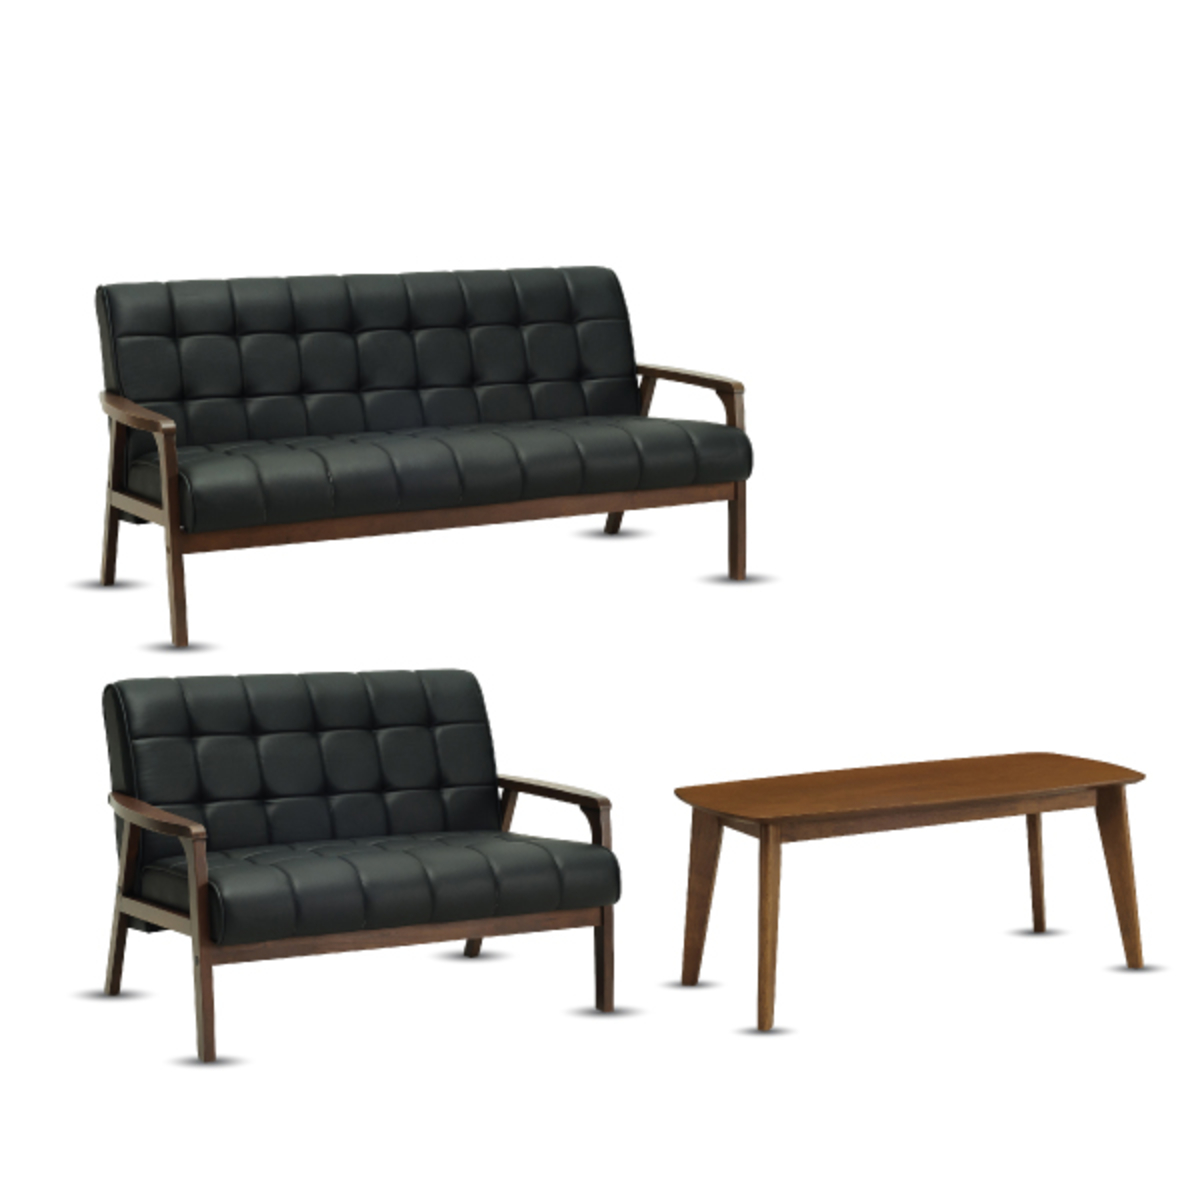 Sofa tucson stetson sofa by omnia leather free shipping for Affordable furniture tucson